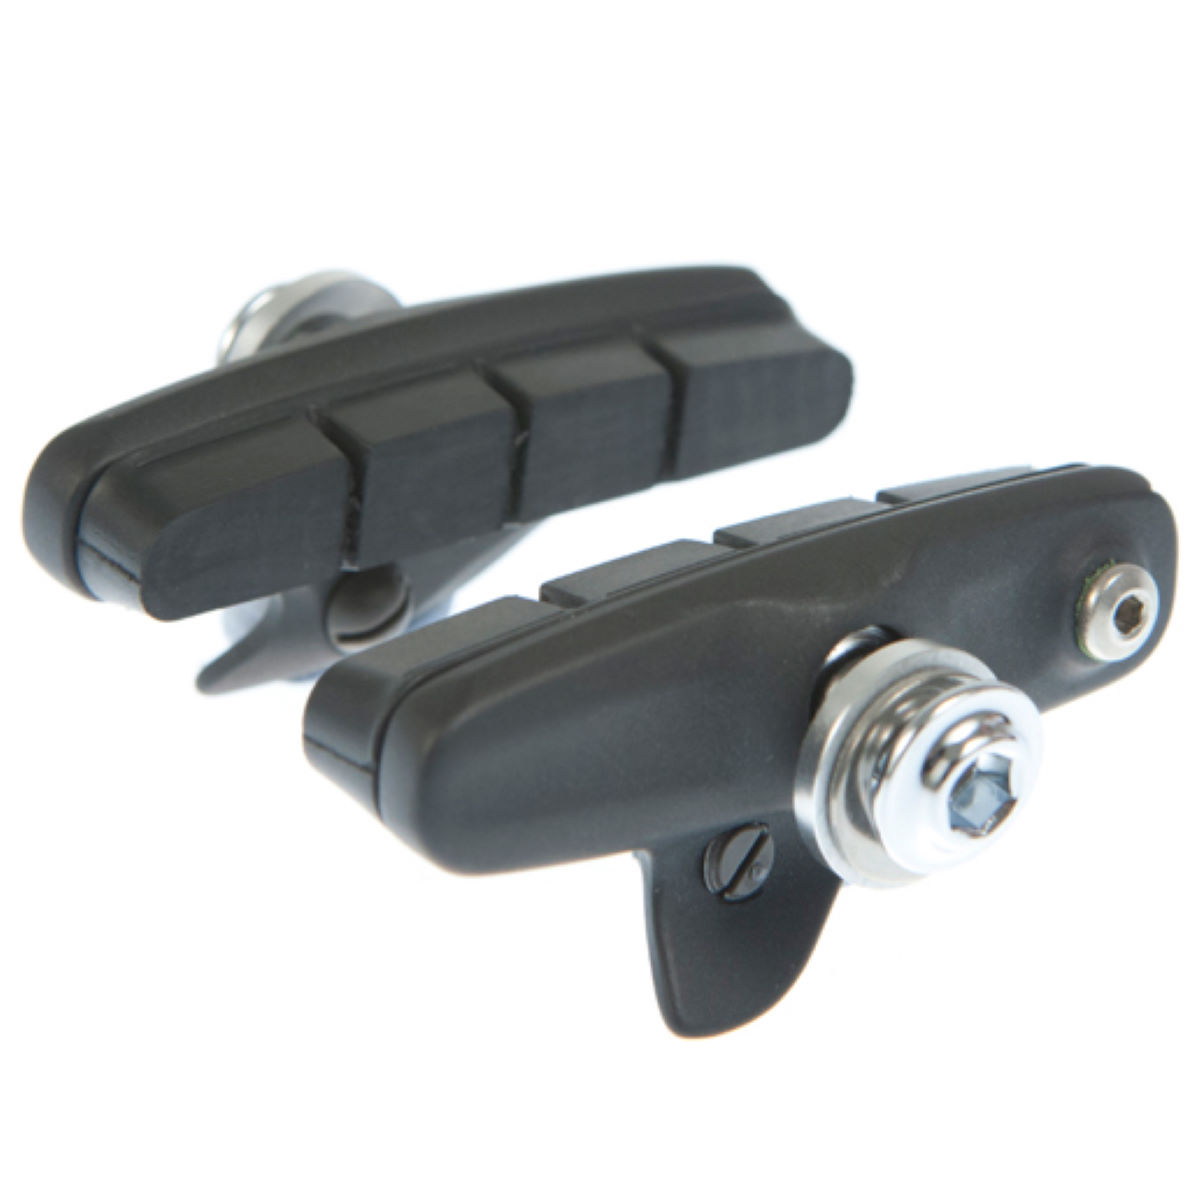 Shimano Br-7900 Complete Cartridge Shoe System R55c3-pair - One Size